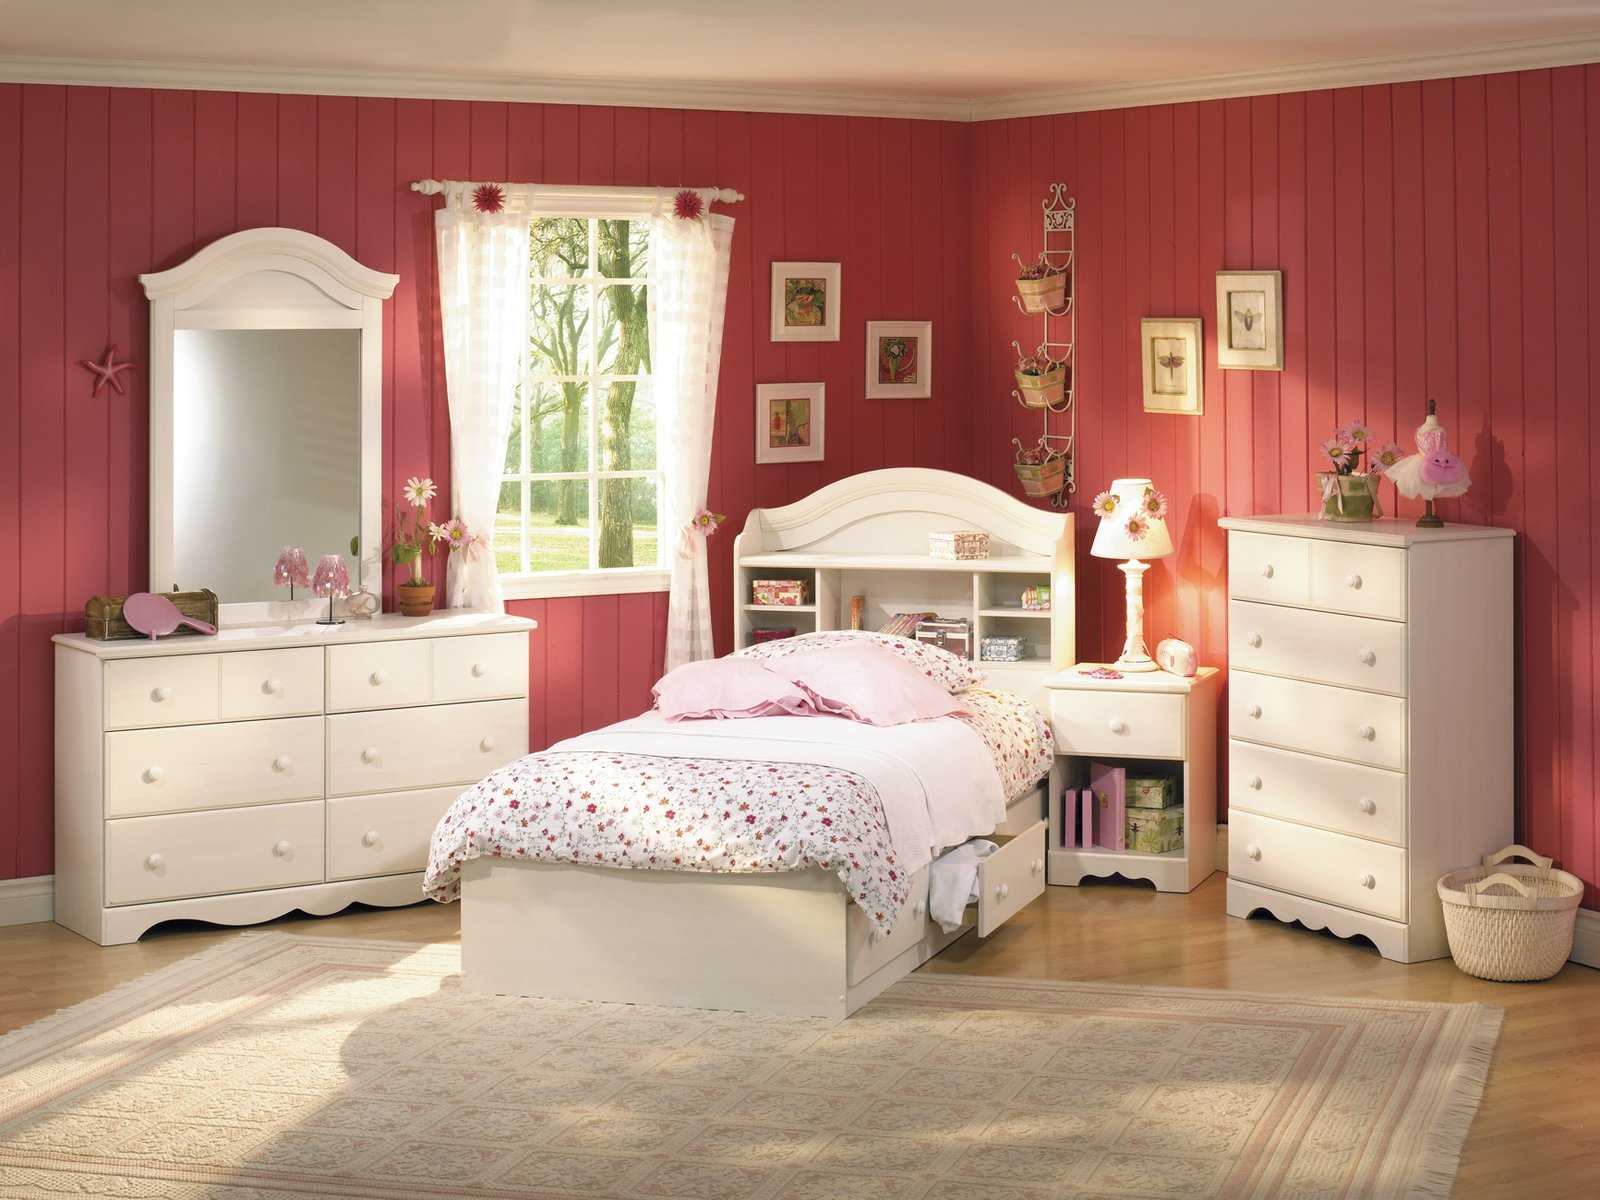 Minimalist Bed With Shelve also Dressers For Girls Bedroom Decor